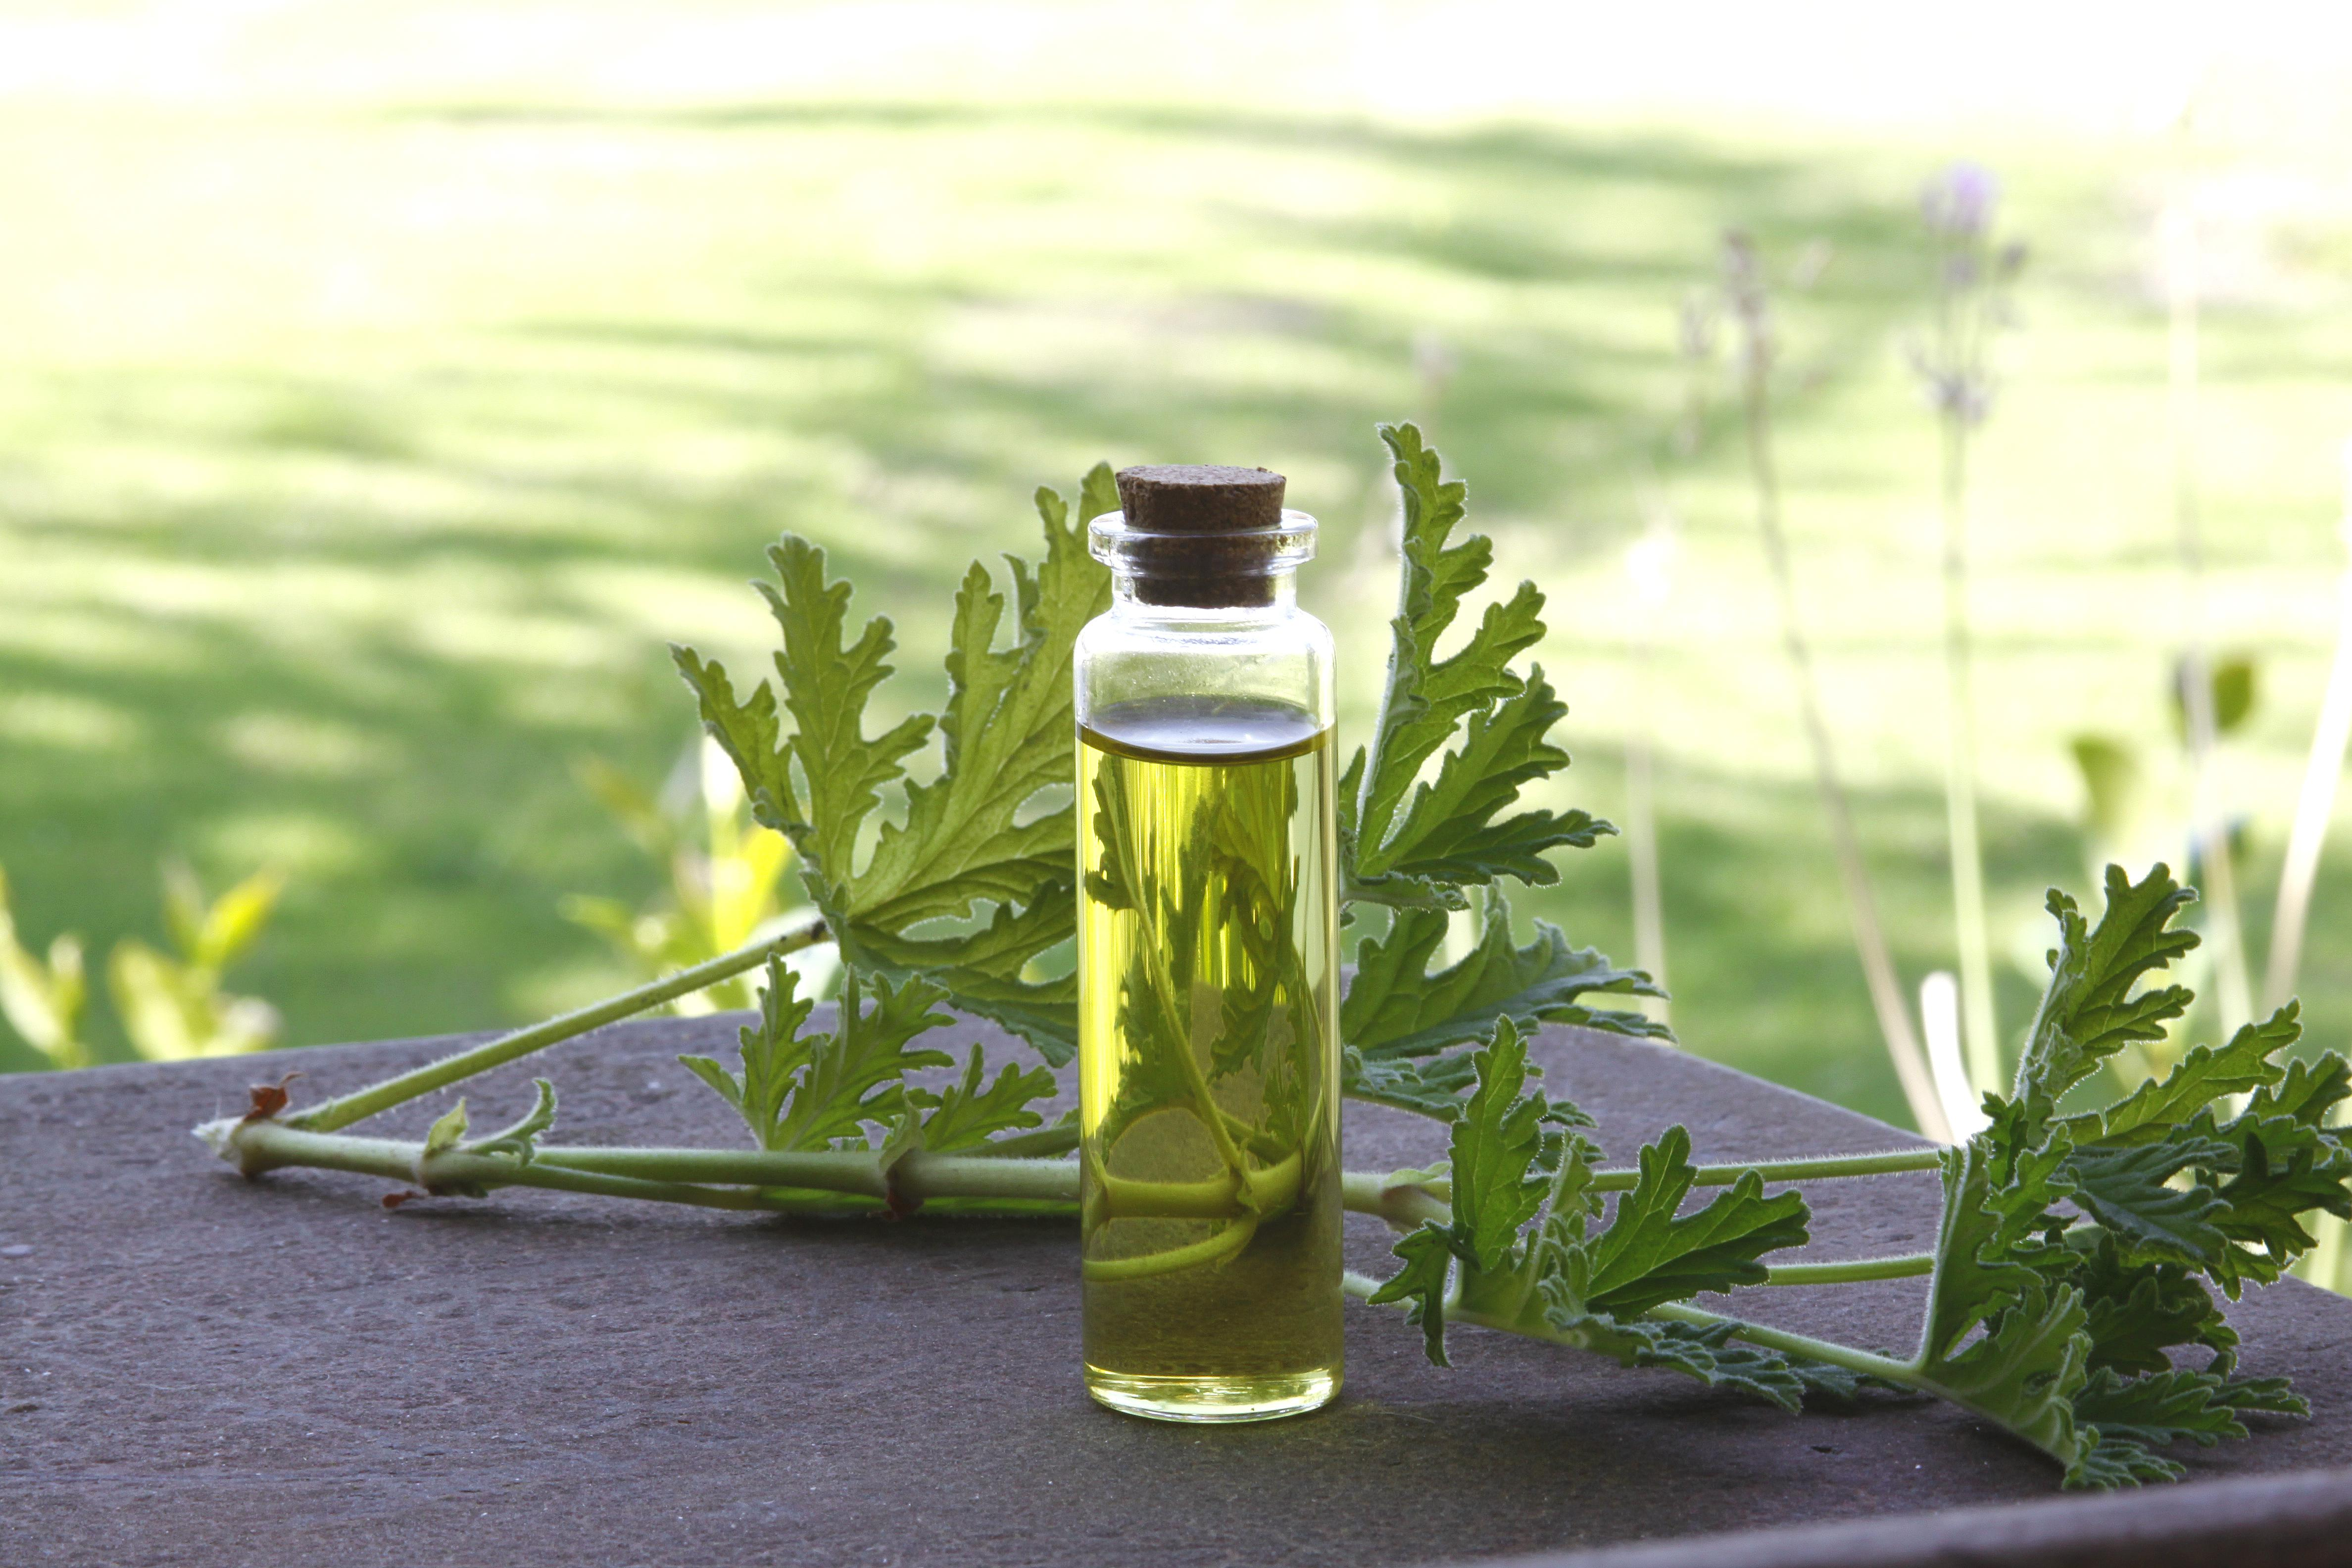 A tall, narrow jar with oil in it and a sprig of parsley behind it